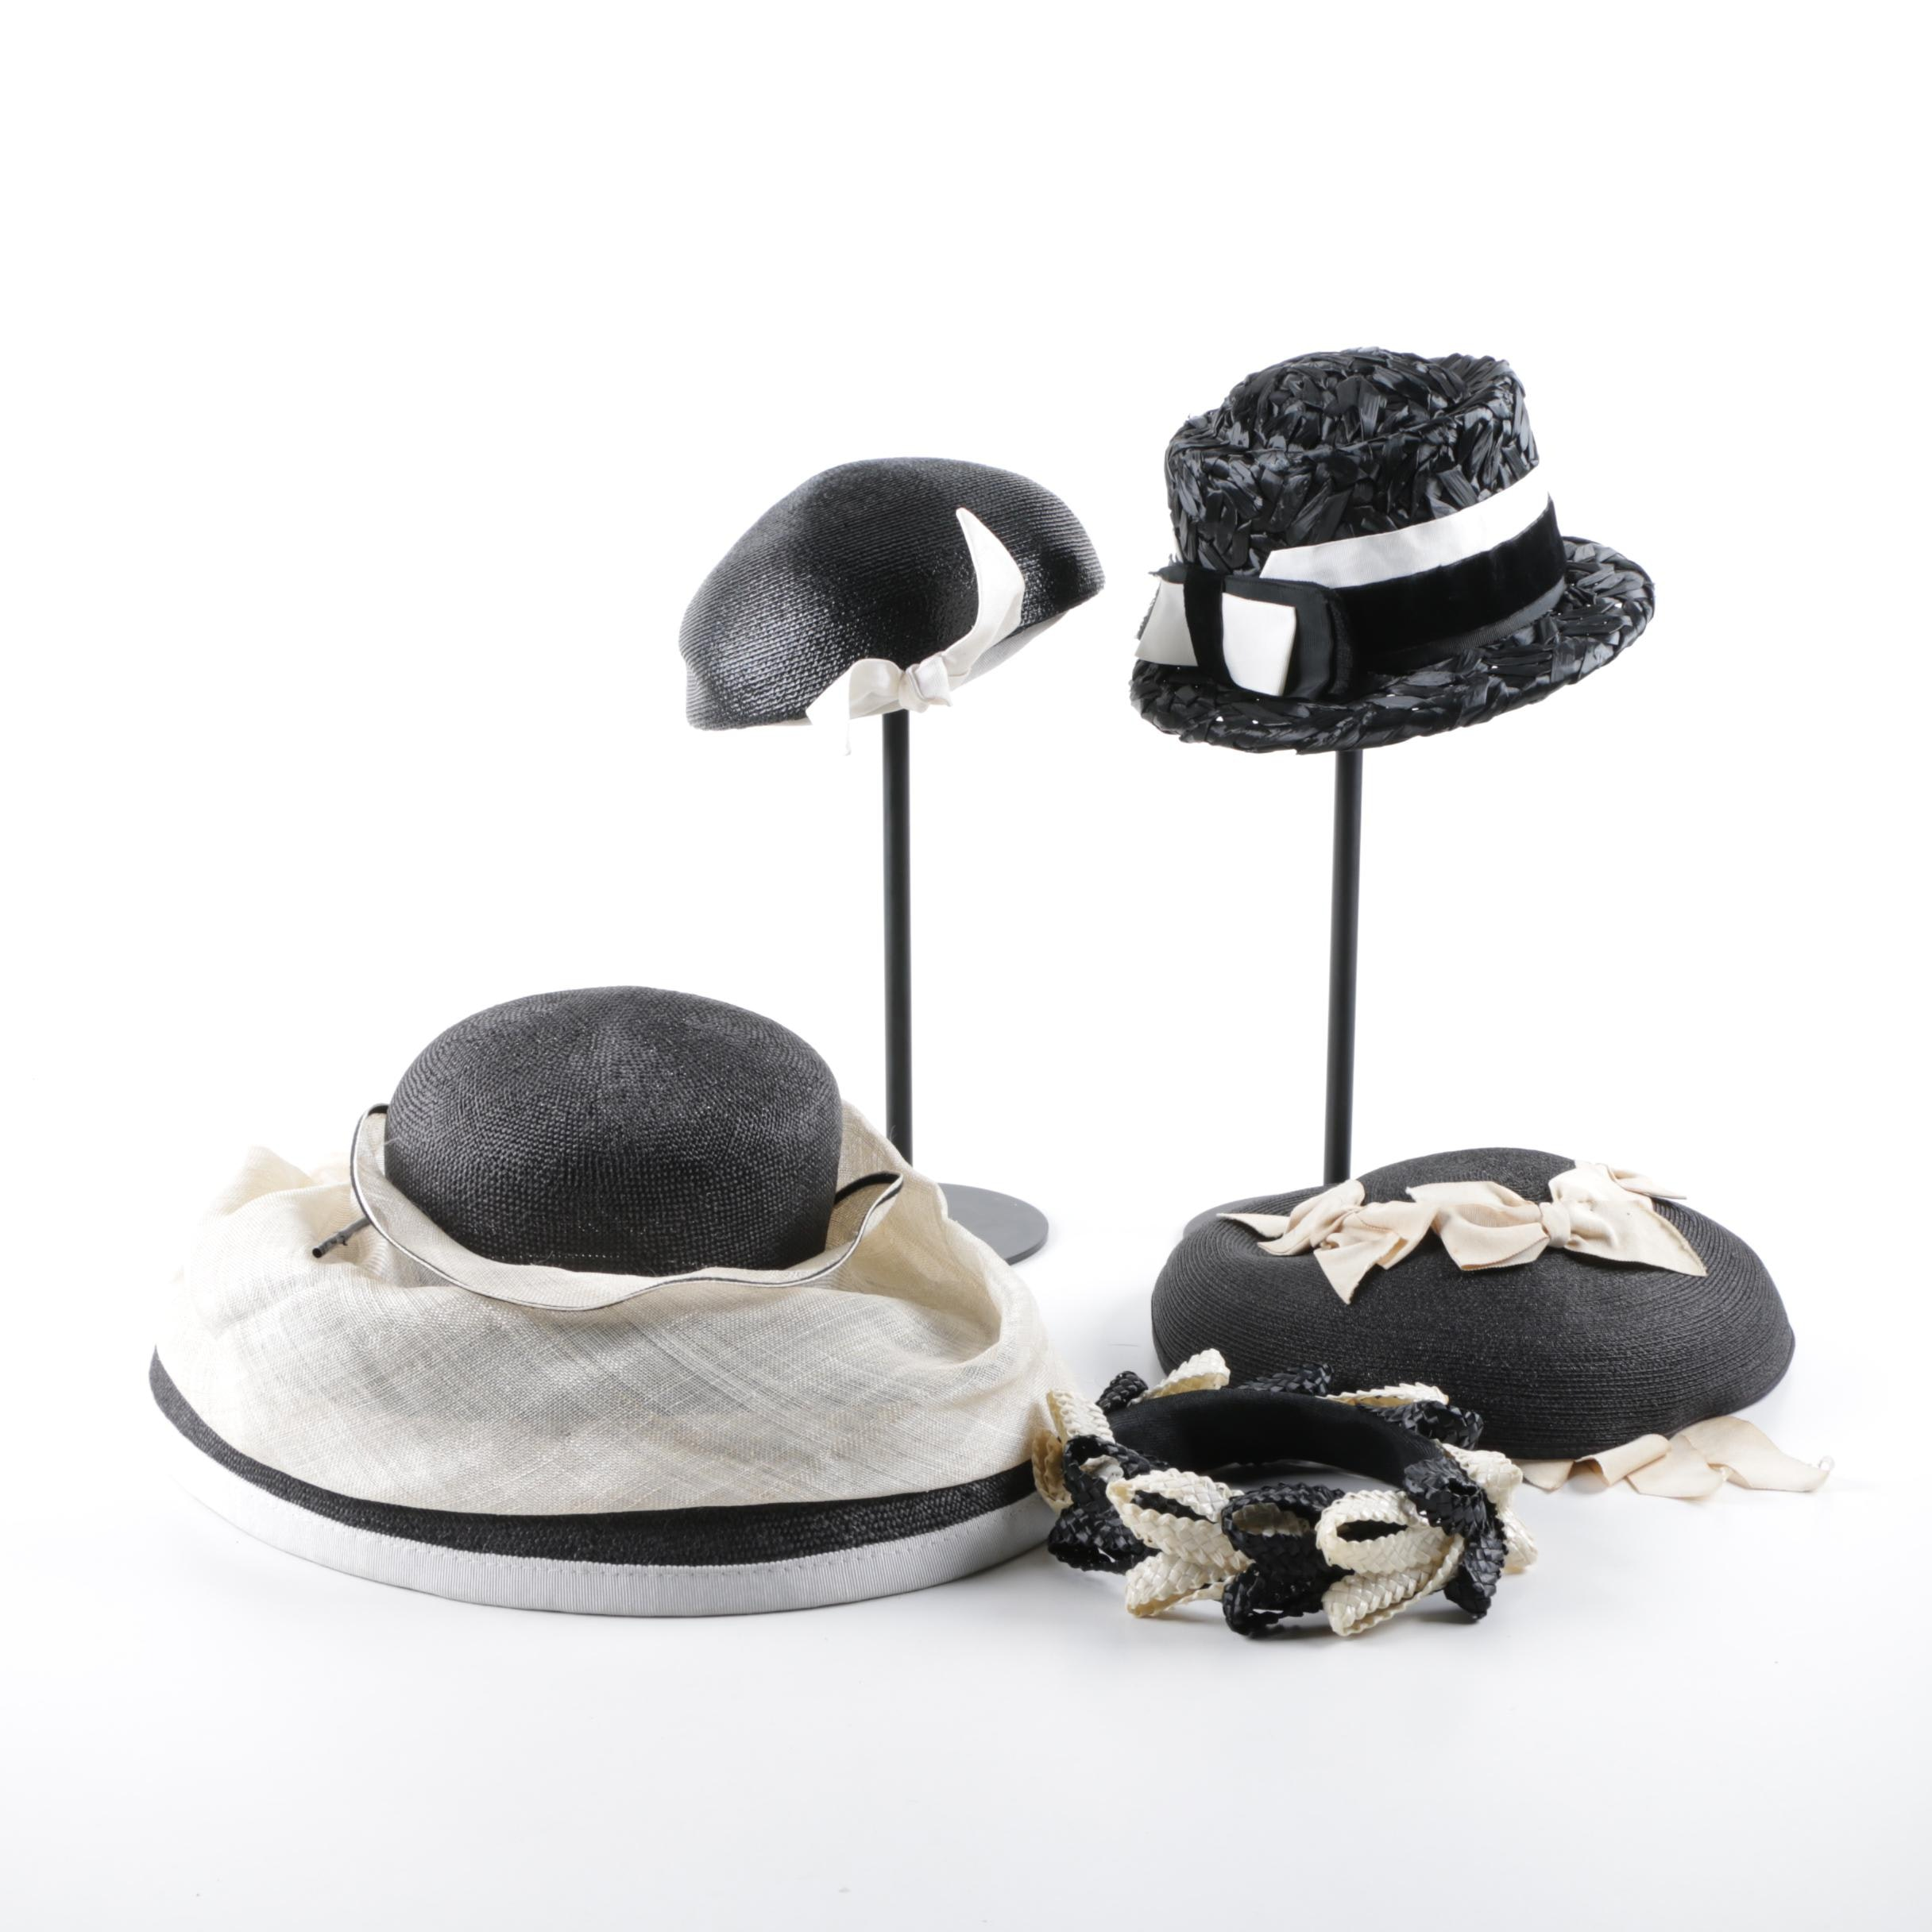 Vintage Black and White Woven Hats Including Frank Olive